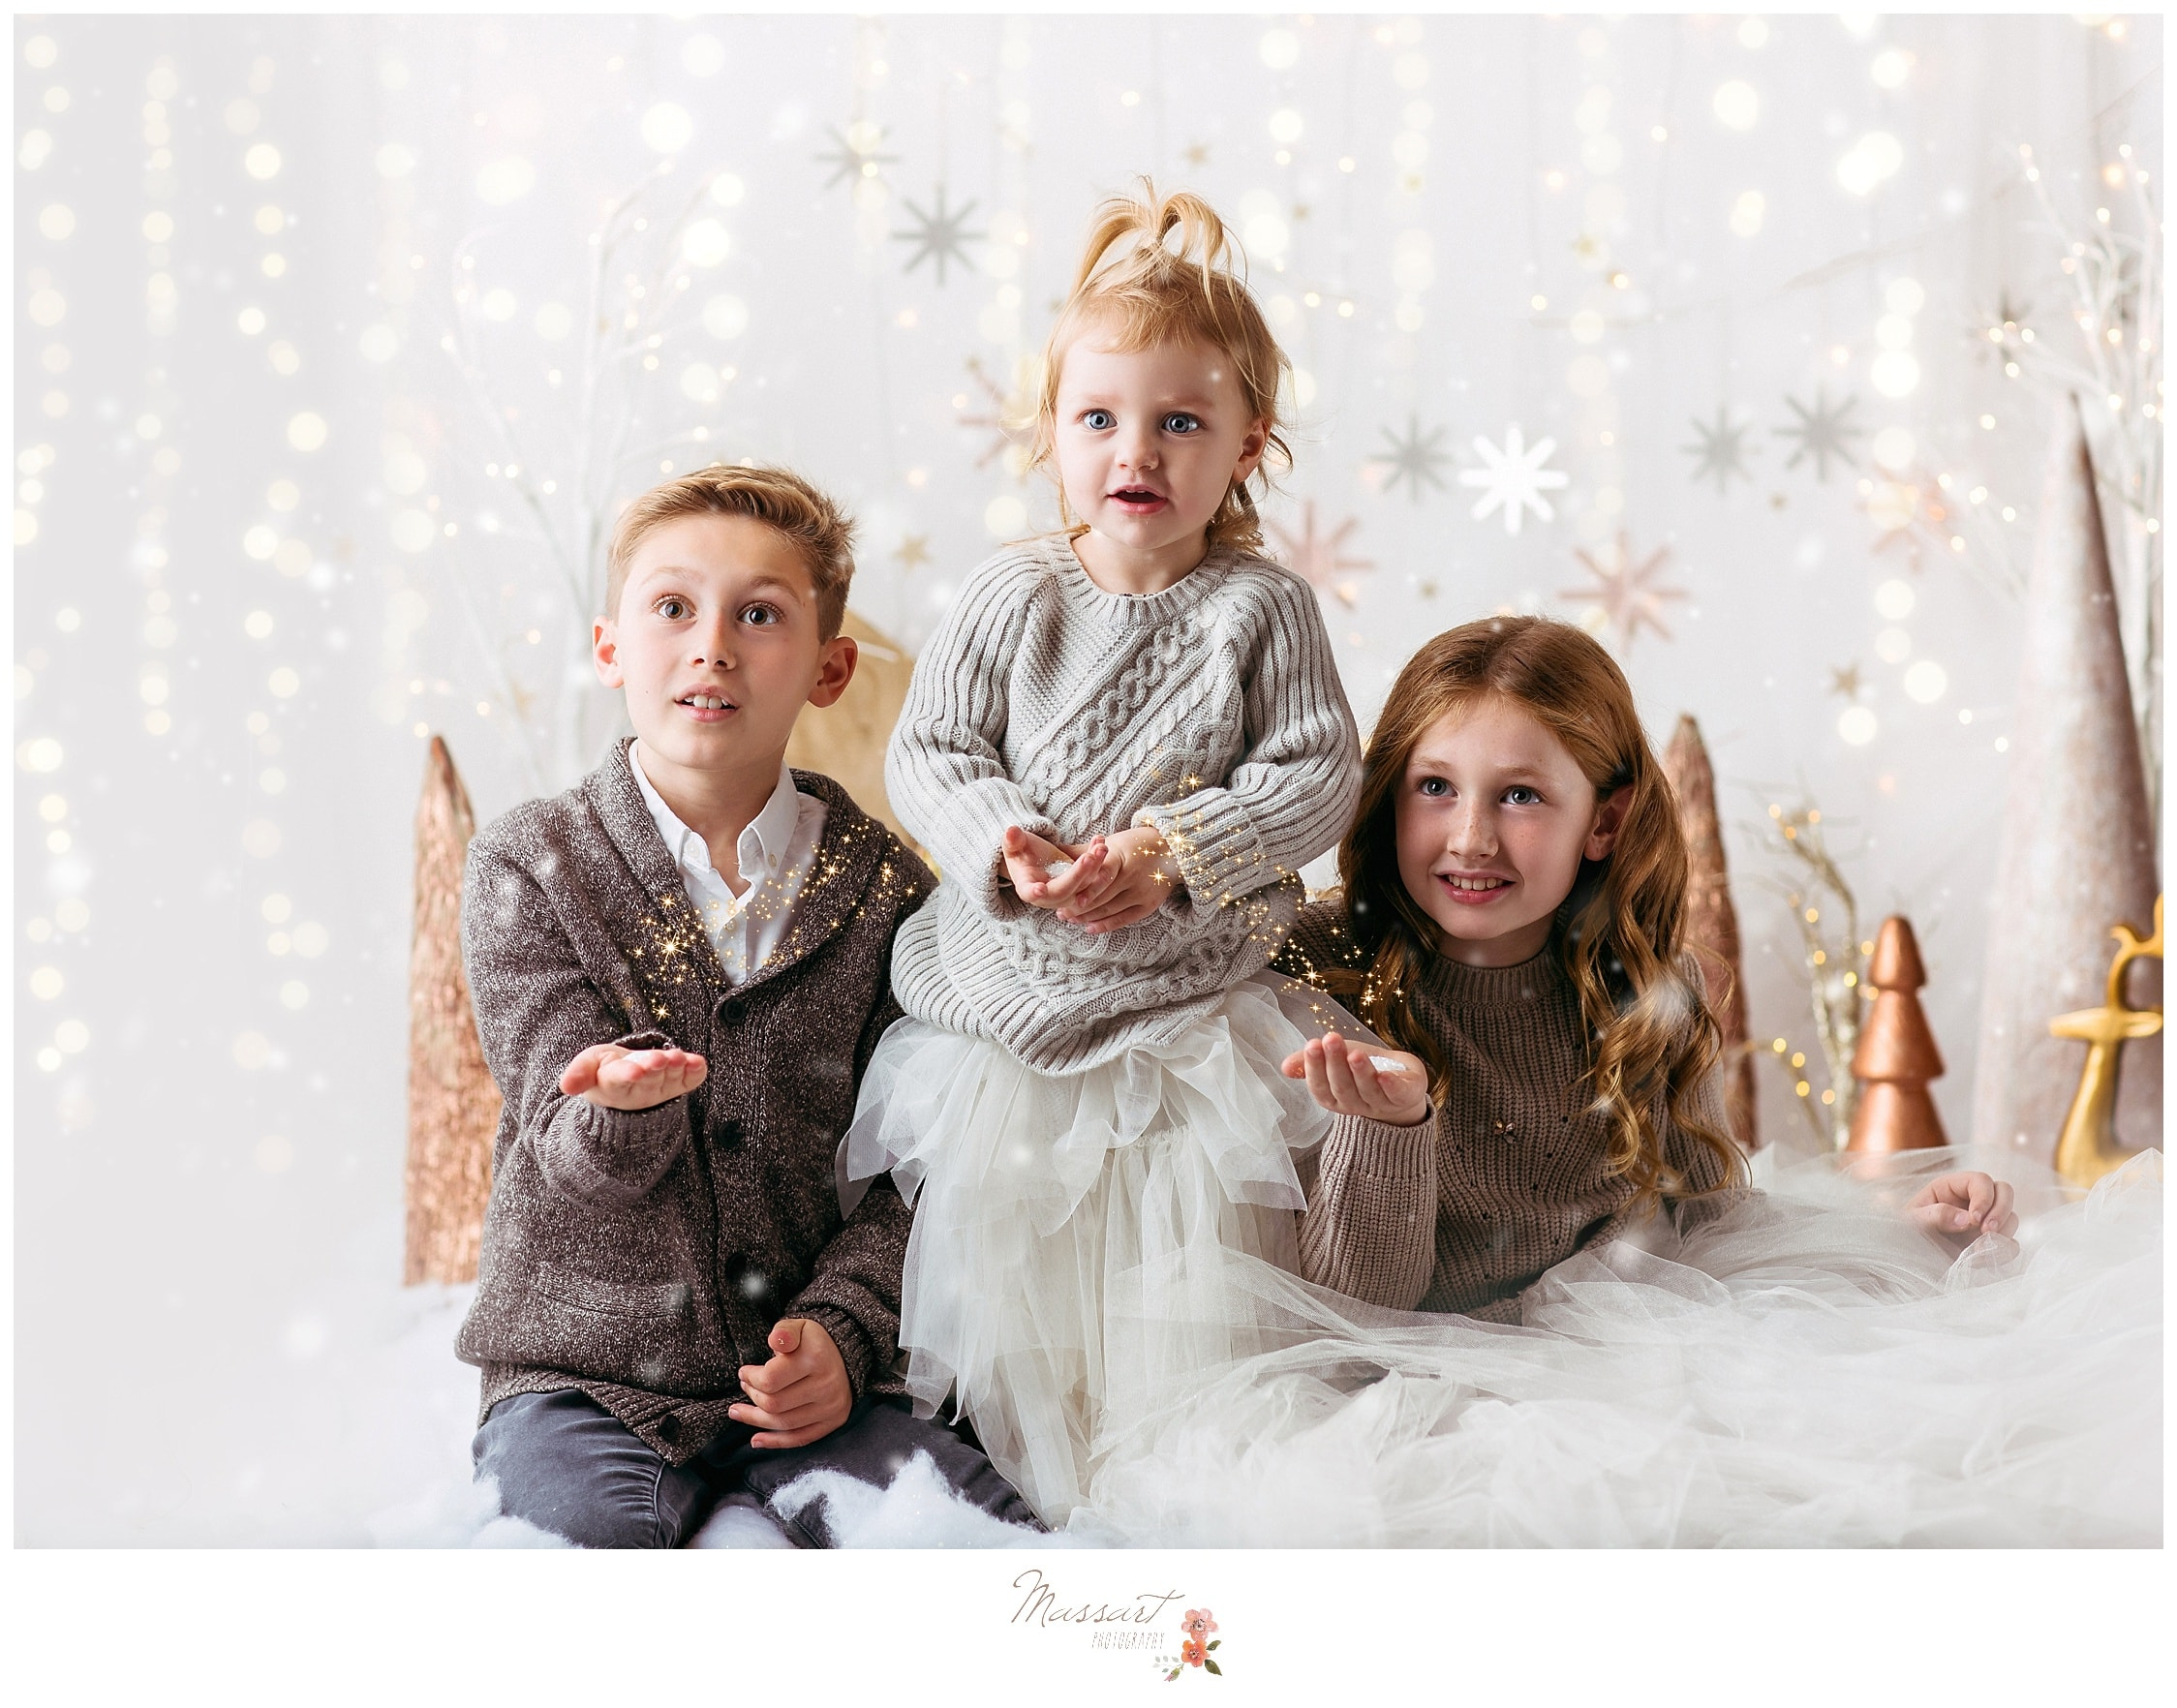 christmas holiday mini sessions at massart photography in warwick, Rhode Island